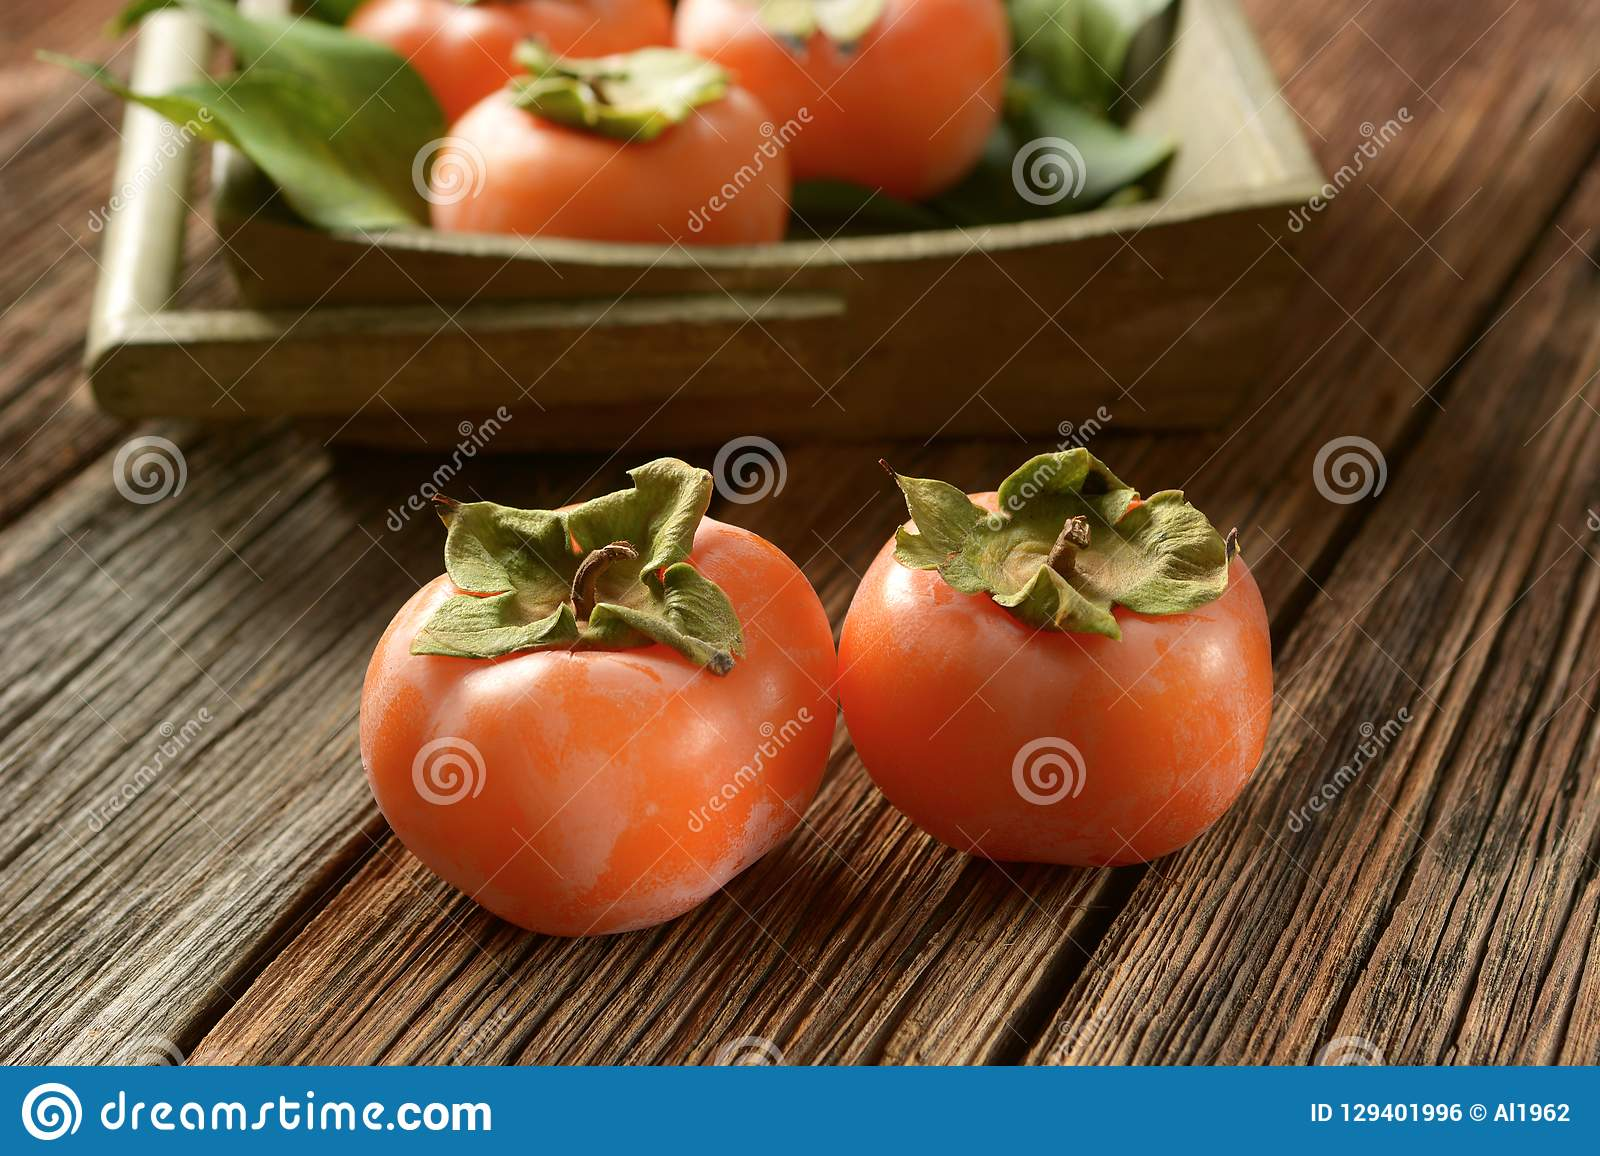 Pile of ripe persimmons on wooden table. Closeup royalty free stock image